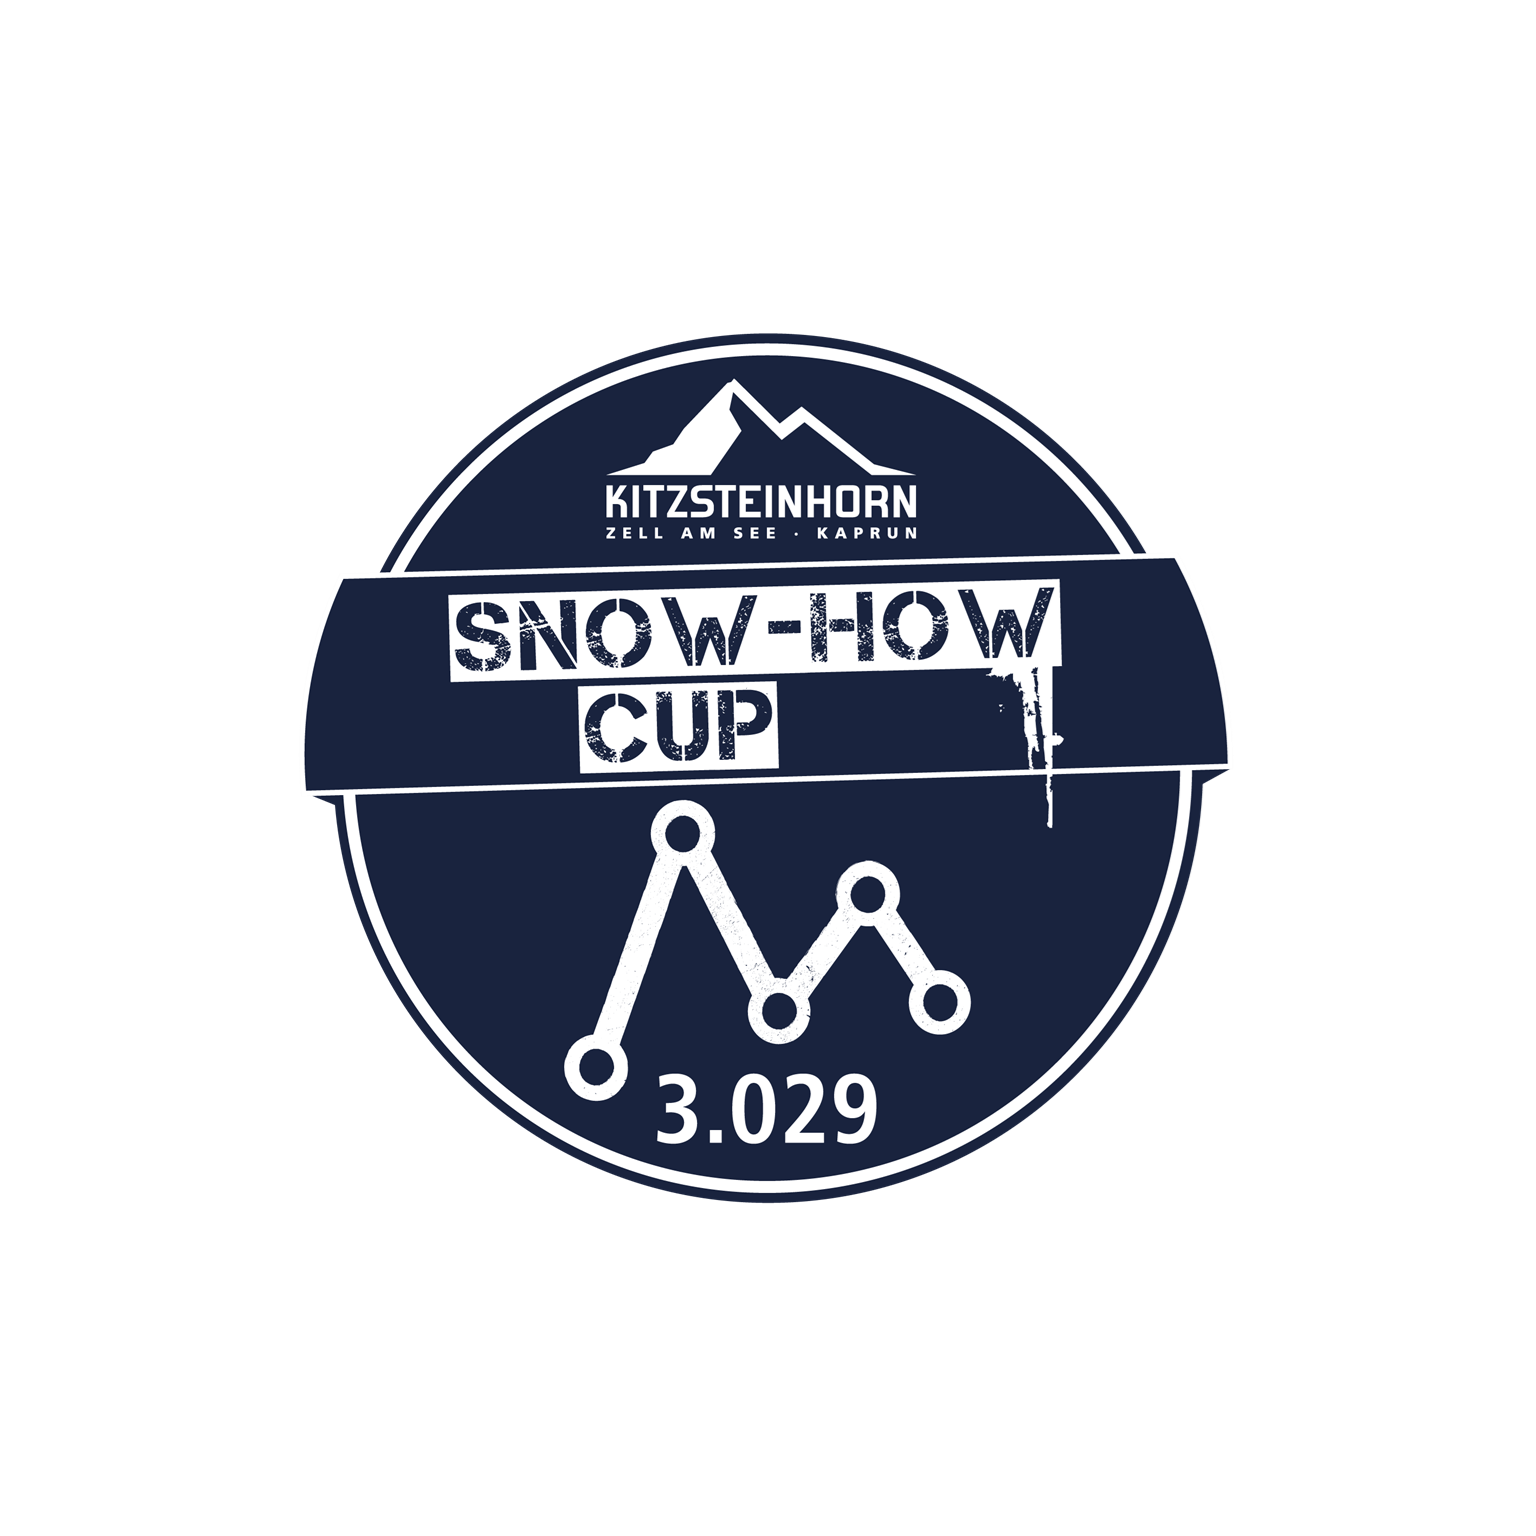 Snow-How Cup